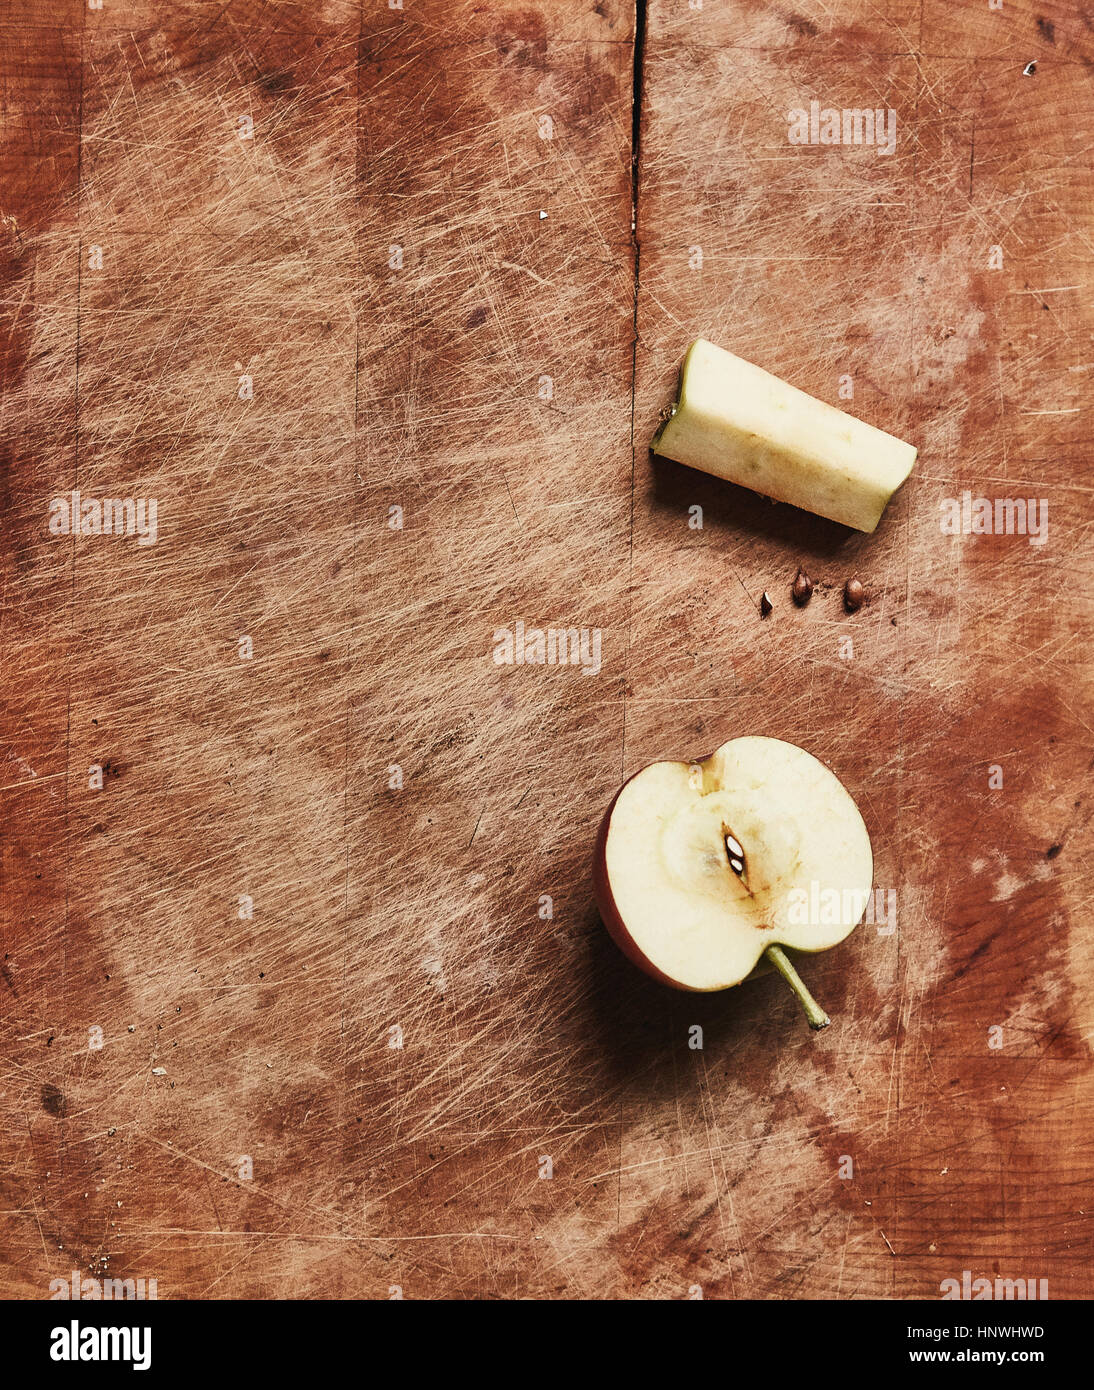 Overhead view of fresh halved apple and apple core on wooden cutting board - Stock Image